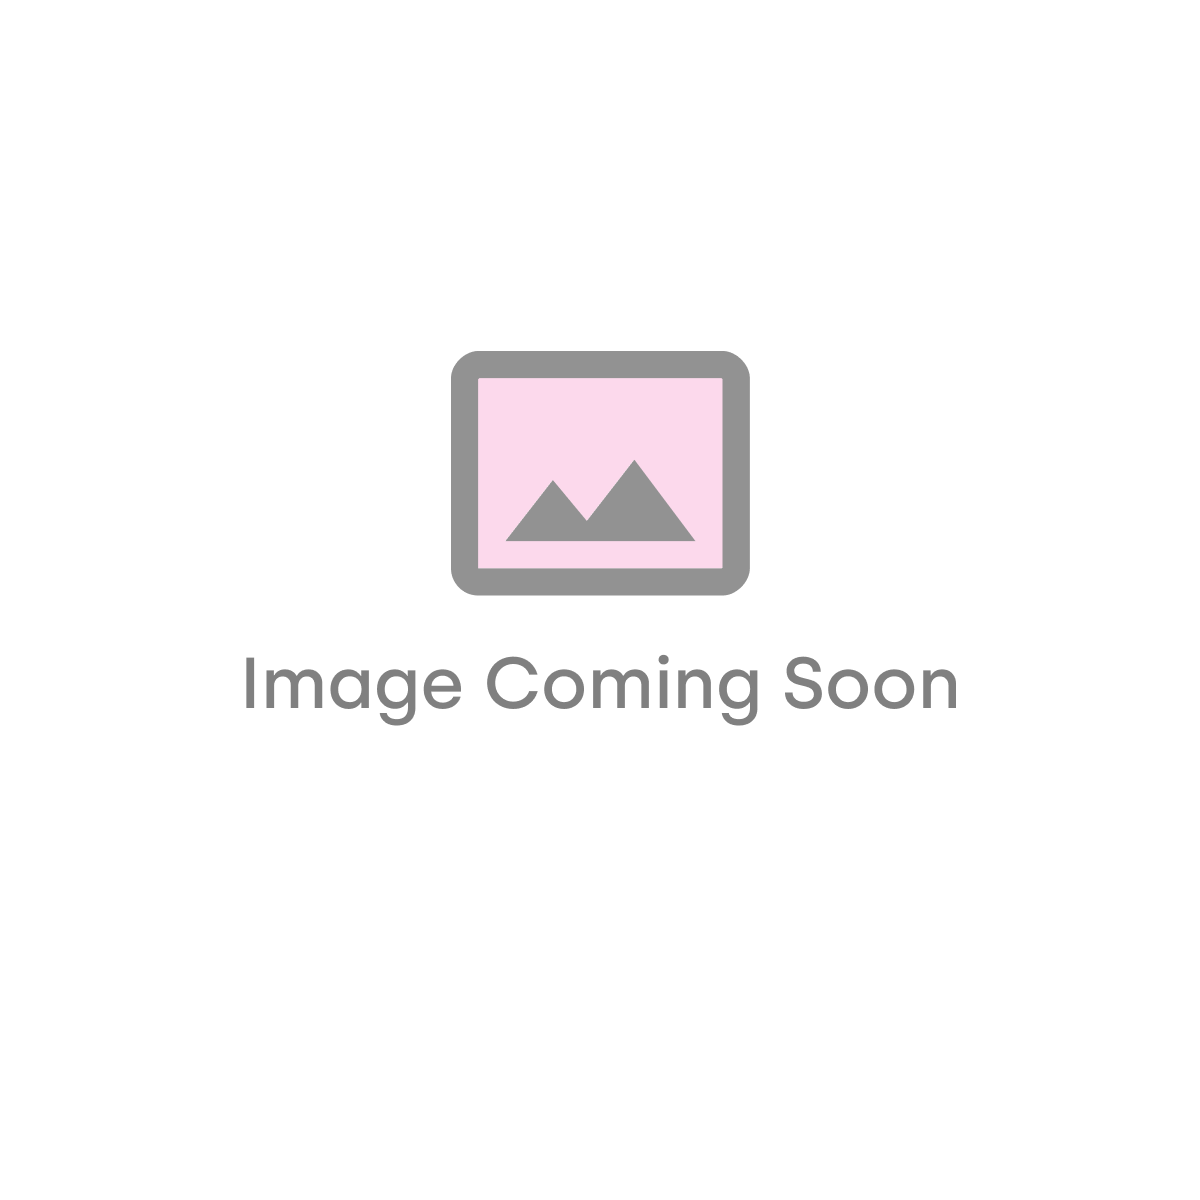 Rich Walnut 12mm Laminate Wooden Flooring - 1.48sqm per pack (17538)